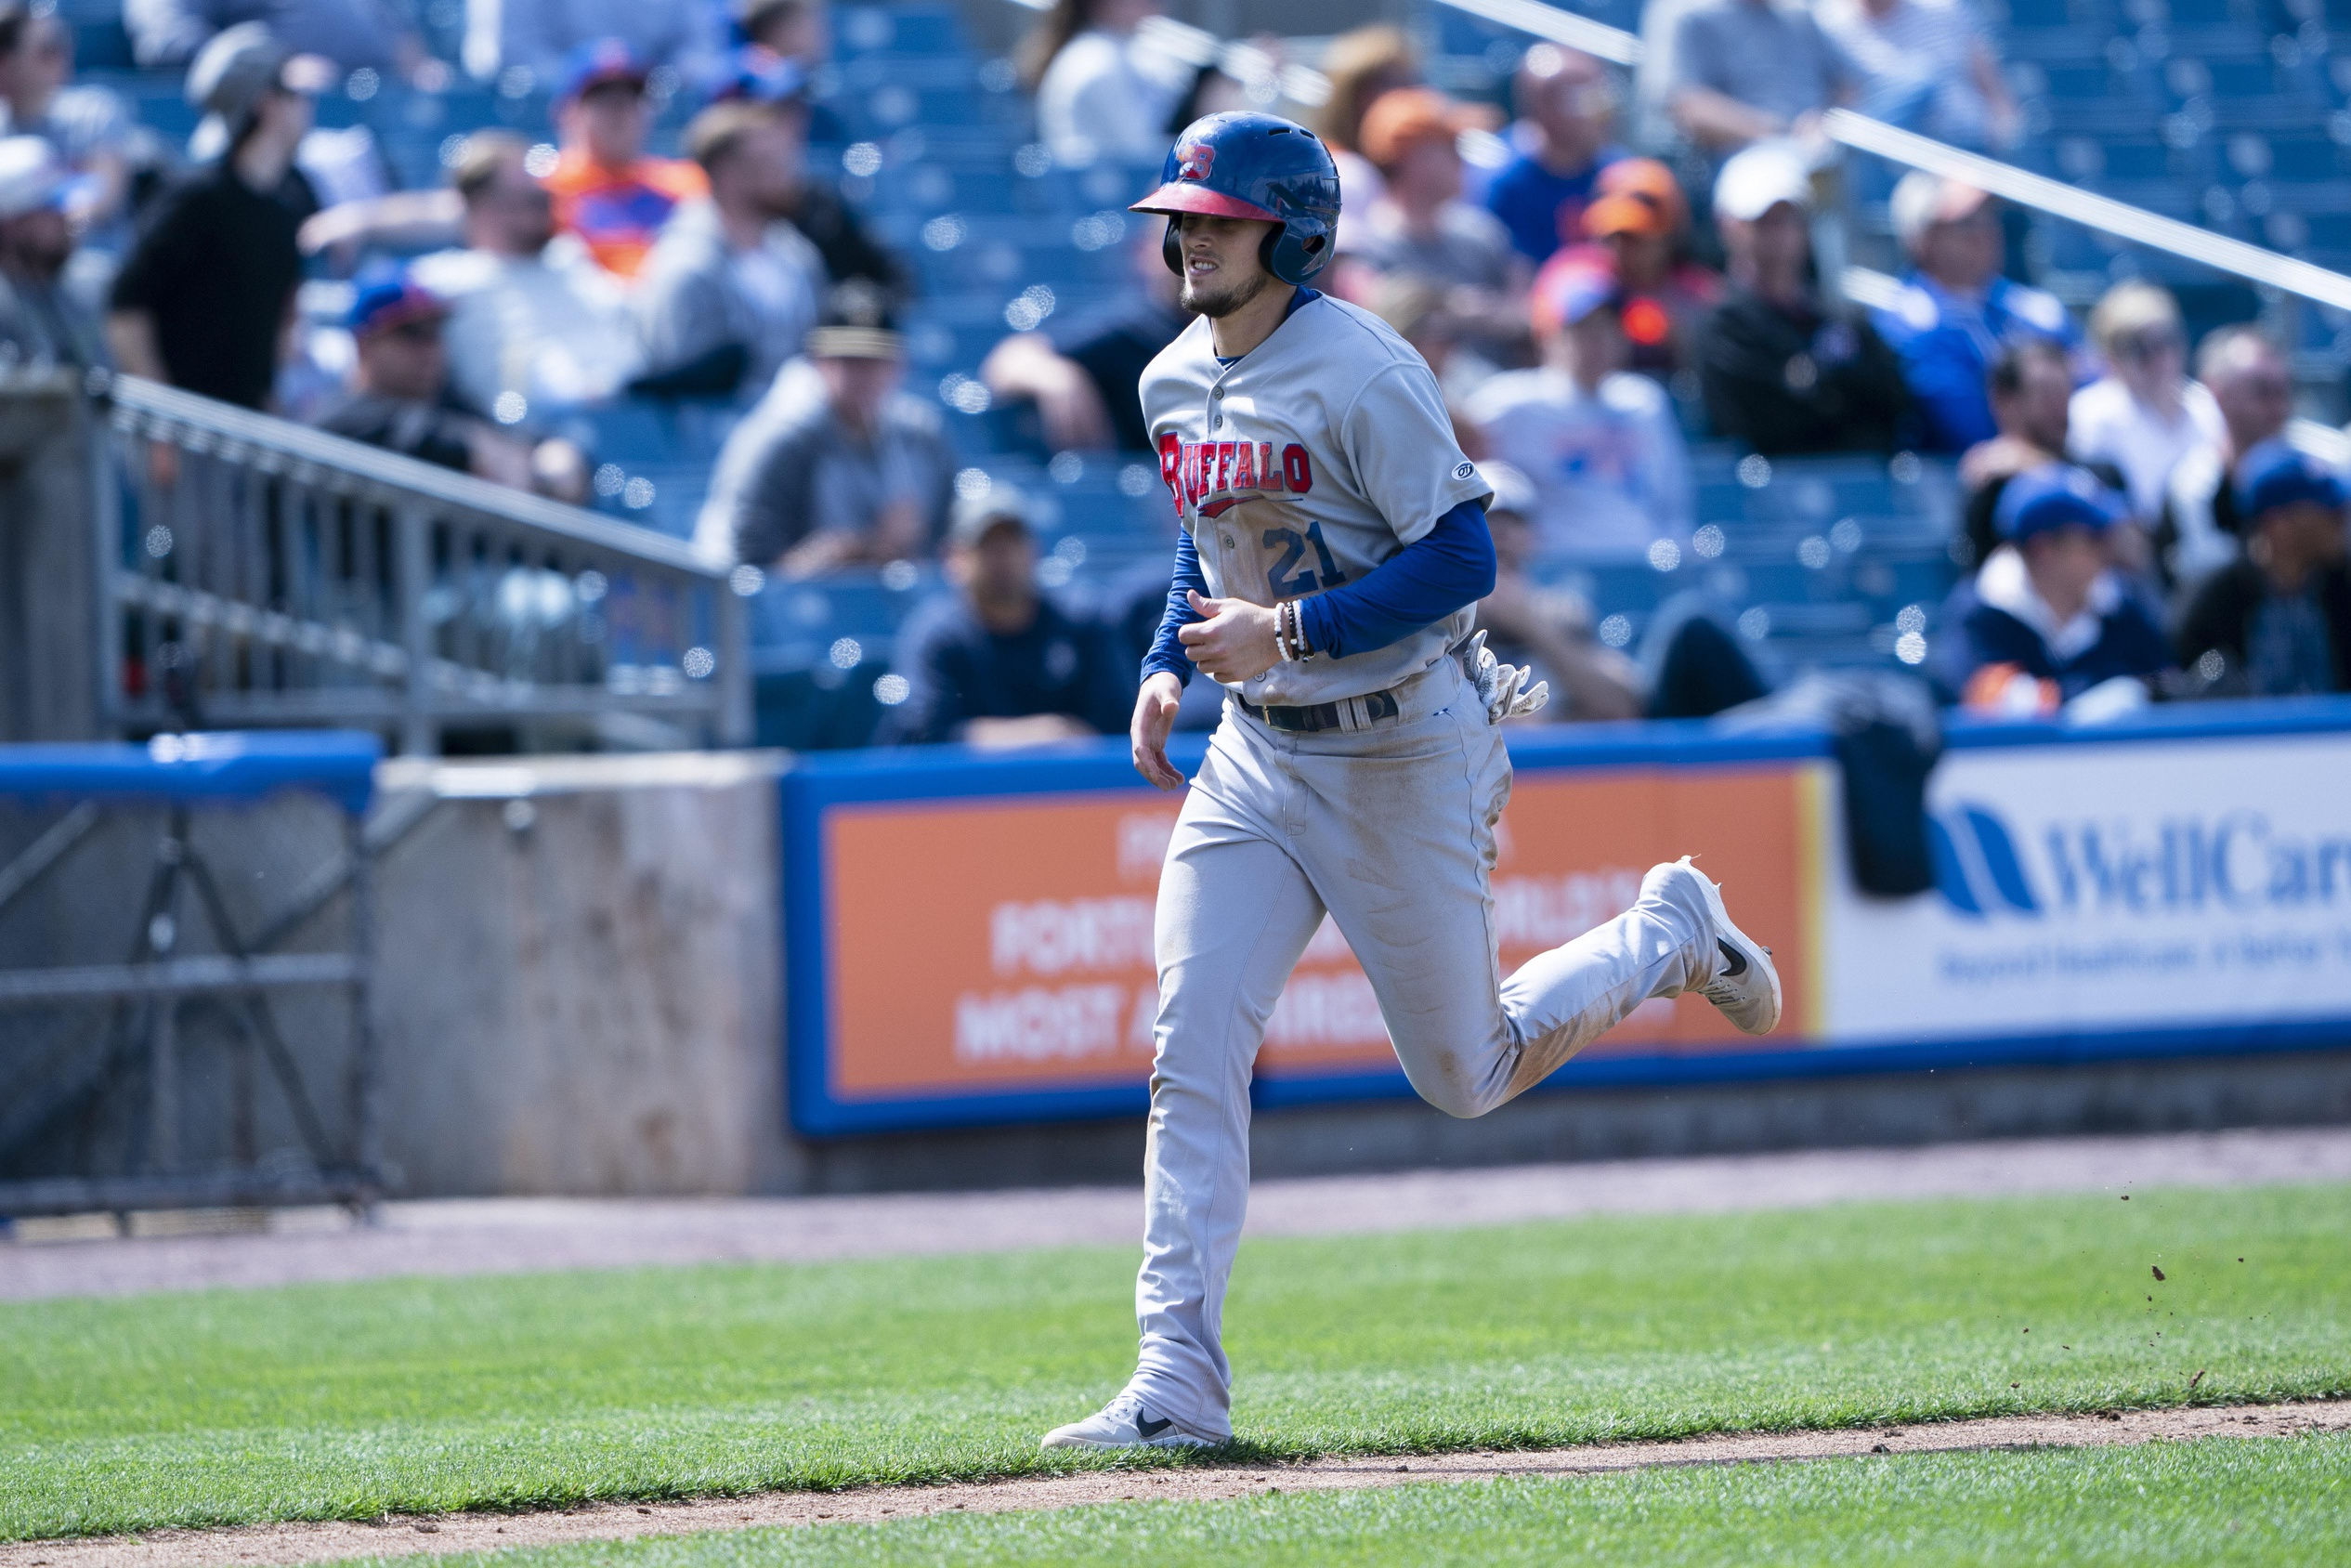 What can we expect from Cavan Biggio? – BlueJaysNation